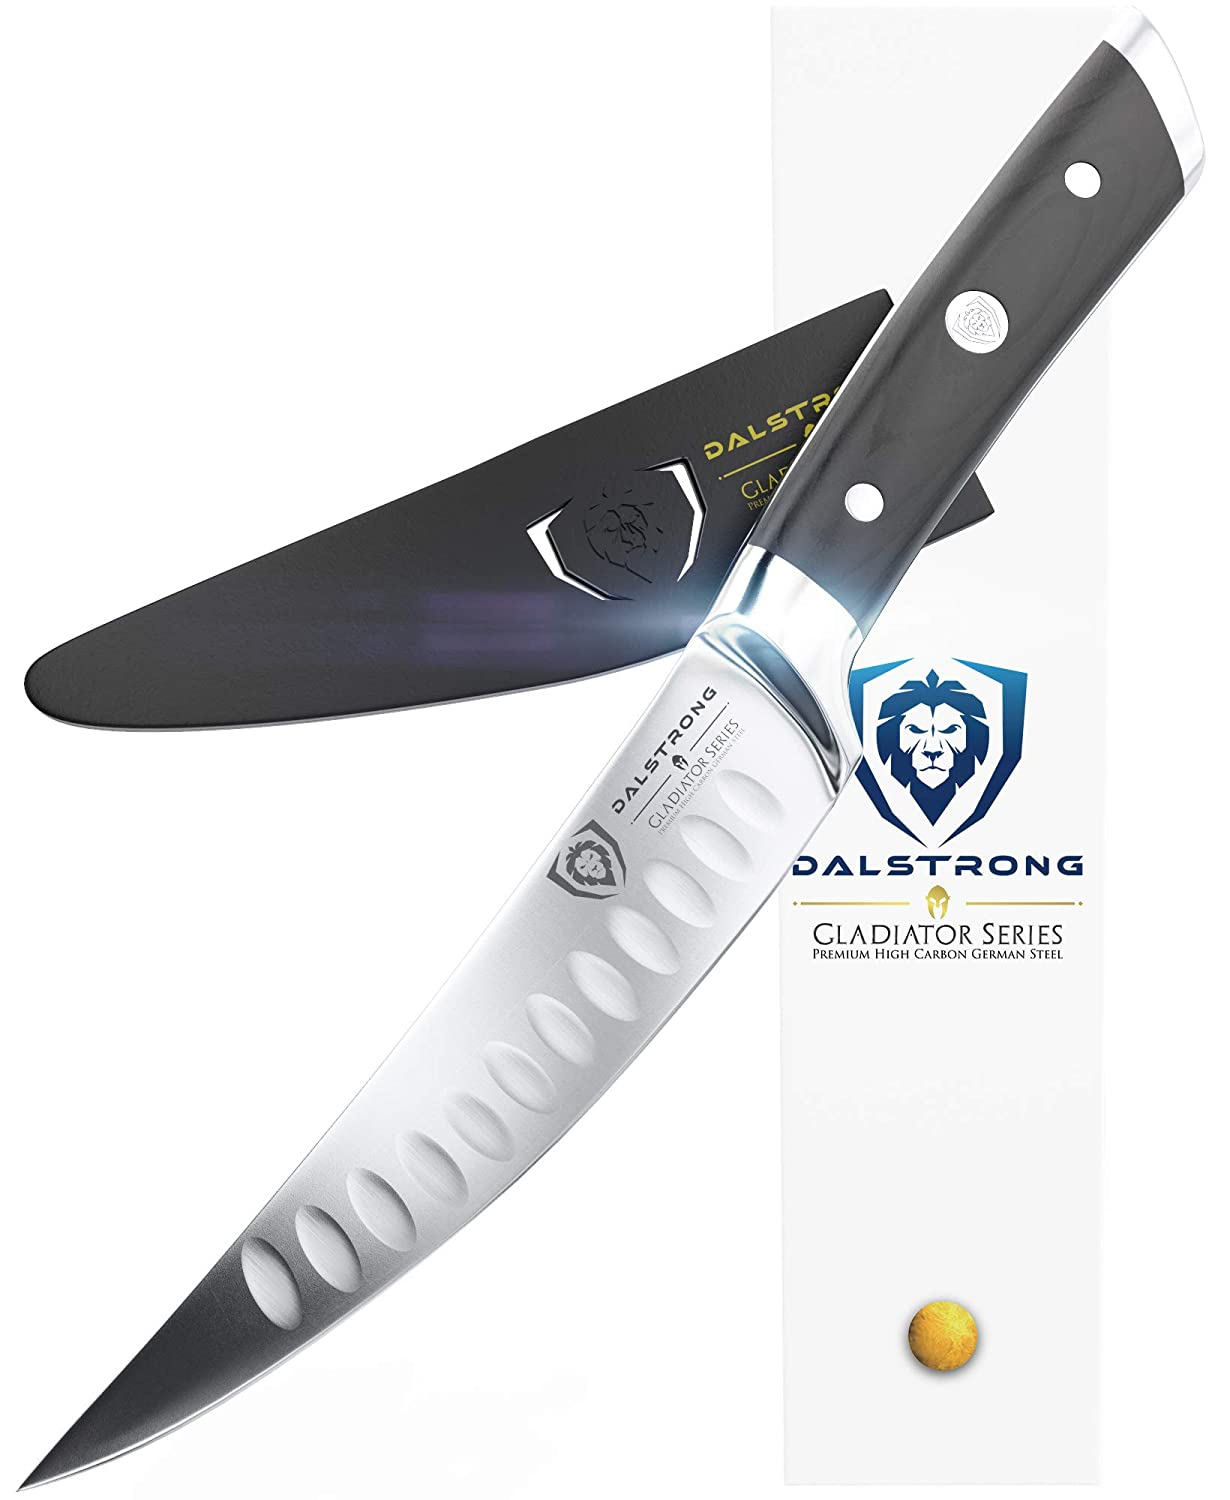 DALSTRONG Gladiator Series Filet & Boning Knife